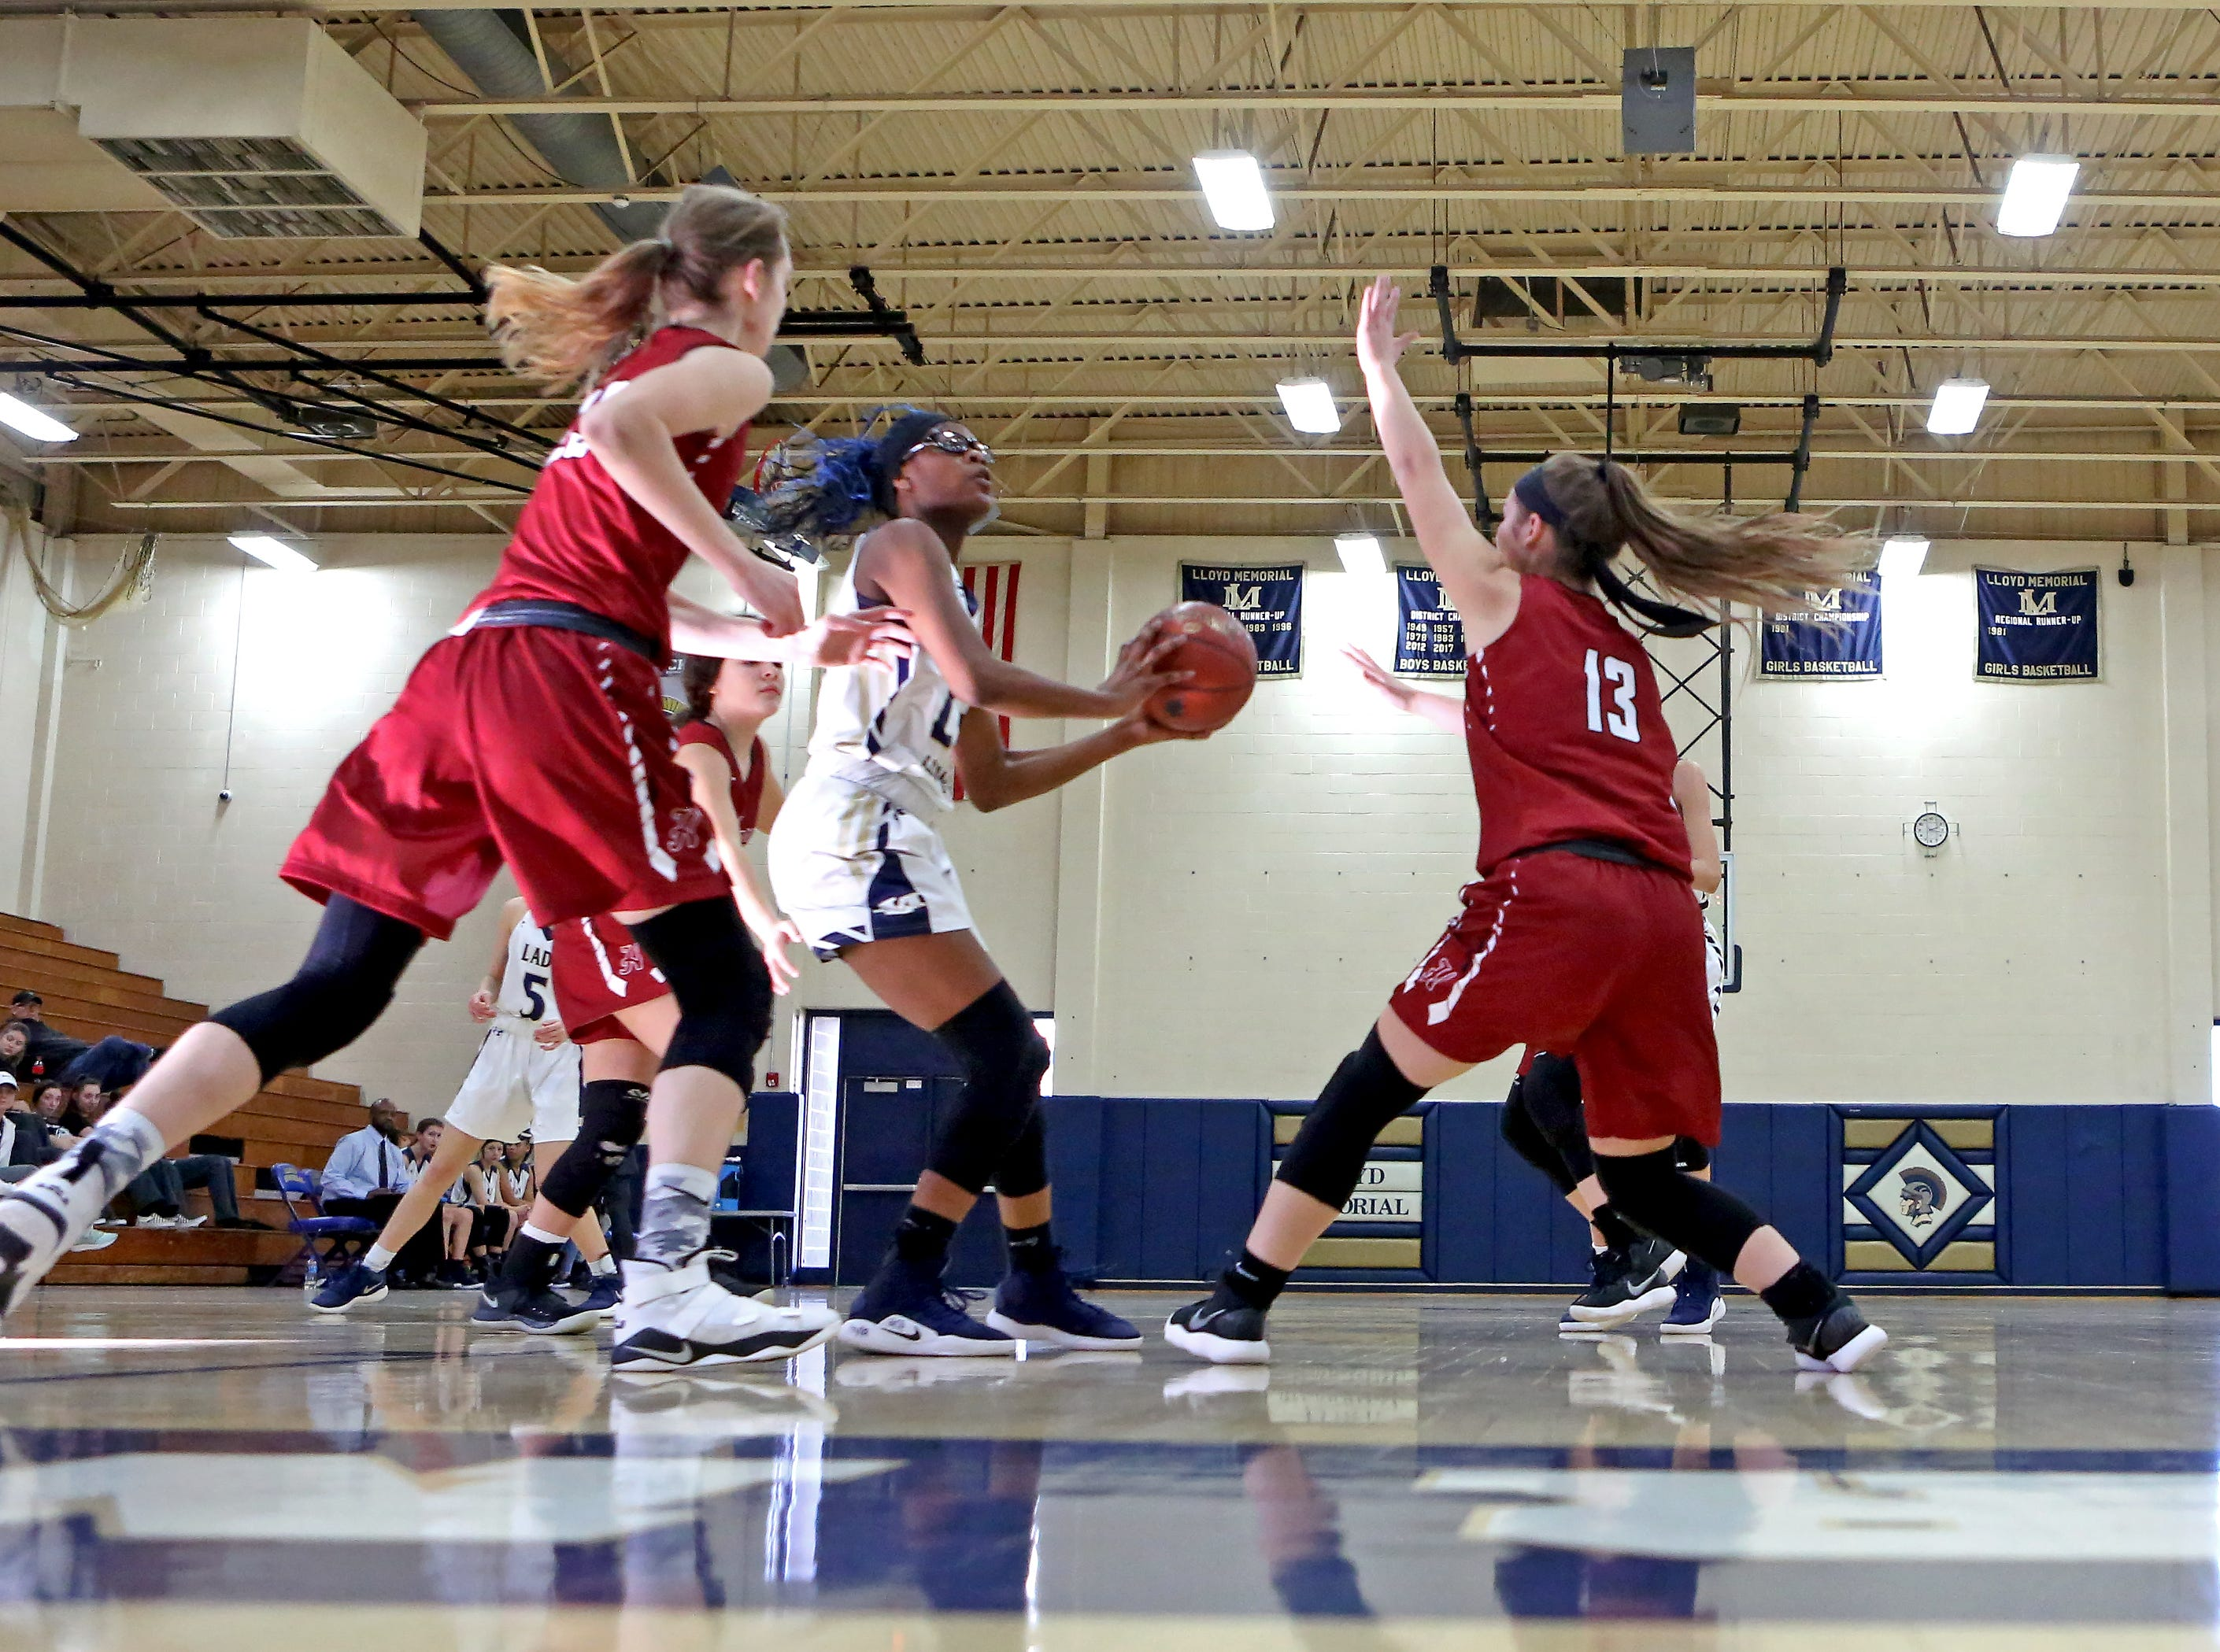 Lloyd forward Jayla LaBordeaux attacks the basket through the Henry County defense. Lloyd defeated Henry County 43-39.